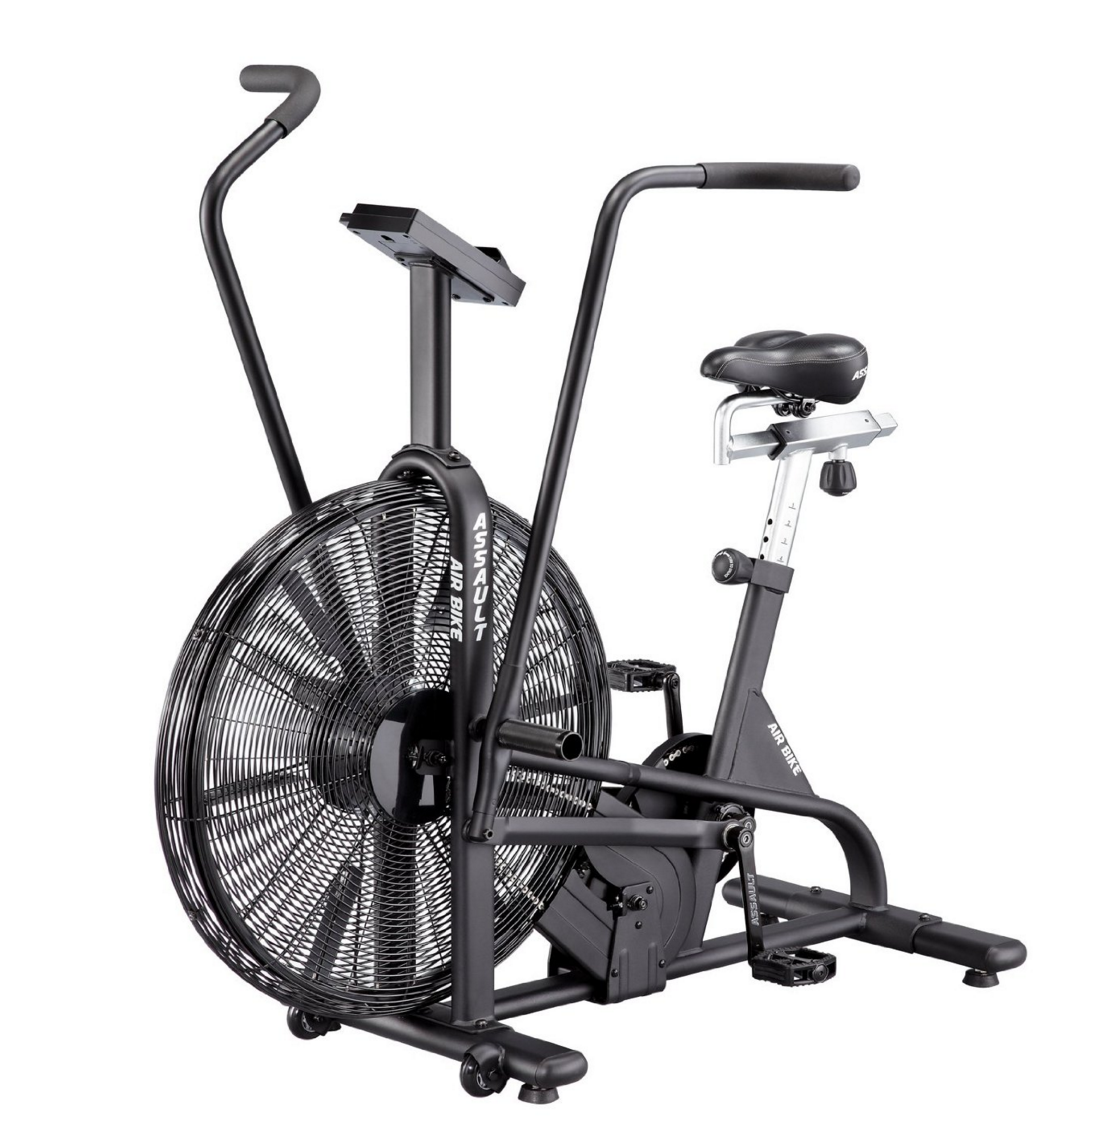 299 Off Highly Rated Fitness Assault Air Bike Trainer